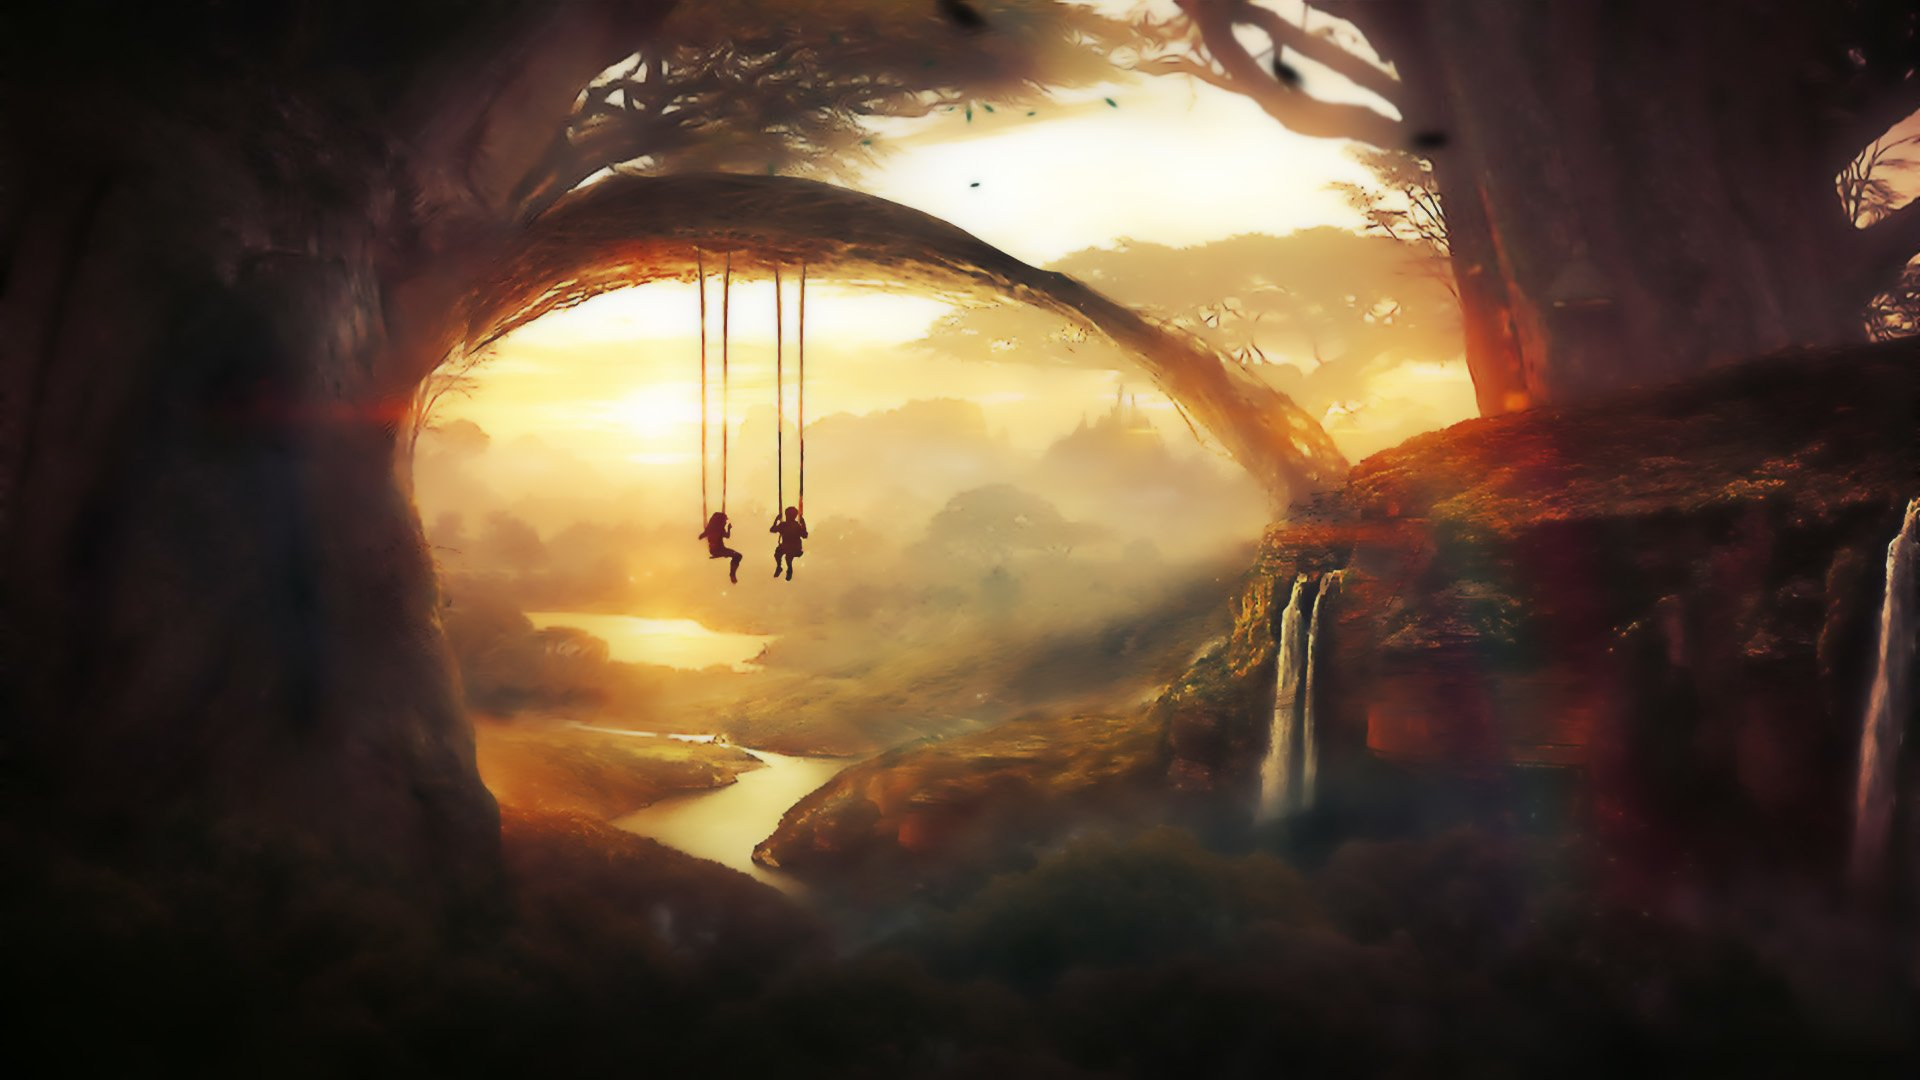 Creative Detailed Hd Fantasy Wallpapers: 89 Wallpapers By Martina Stipan